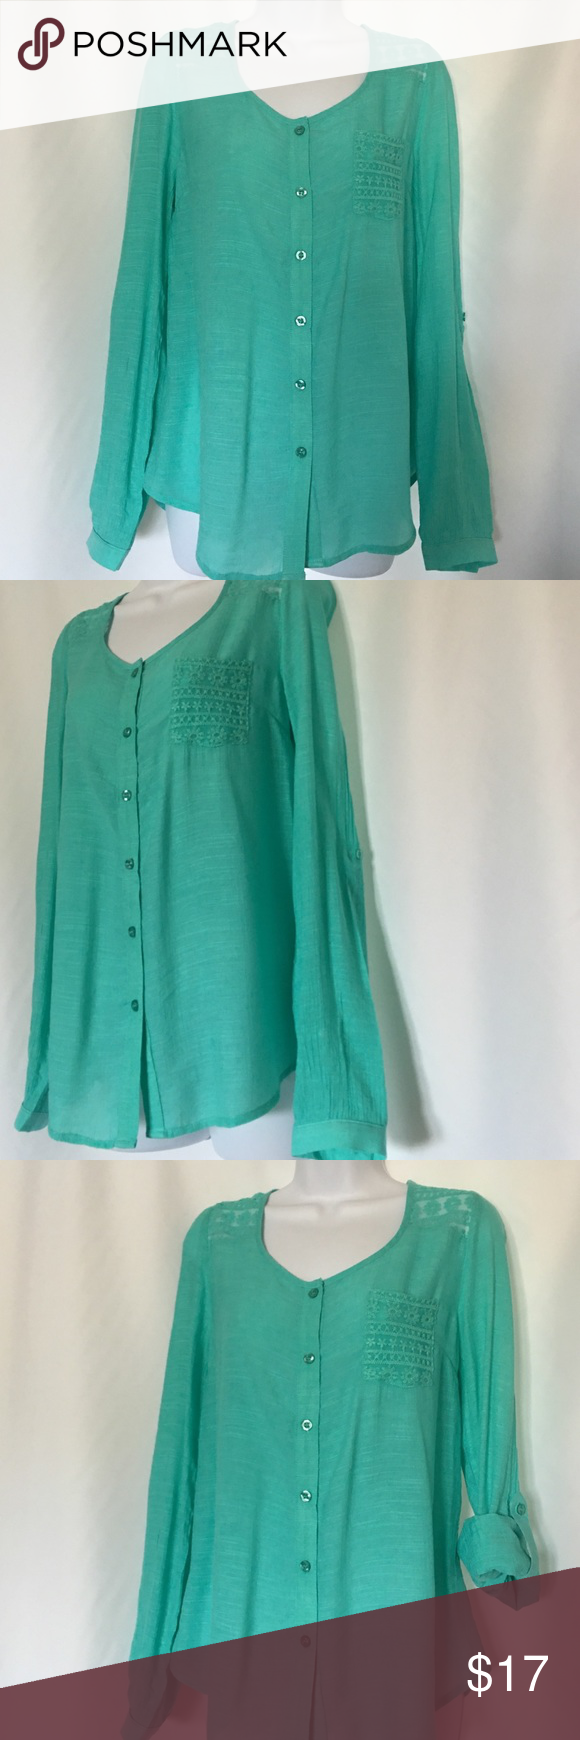 "E&M SIZE L BEAUTIFUL MINT COLOR TOP Size is smaller,fits to 8-10 ,Length 27"" Tops"